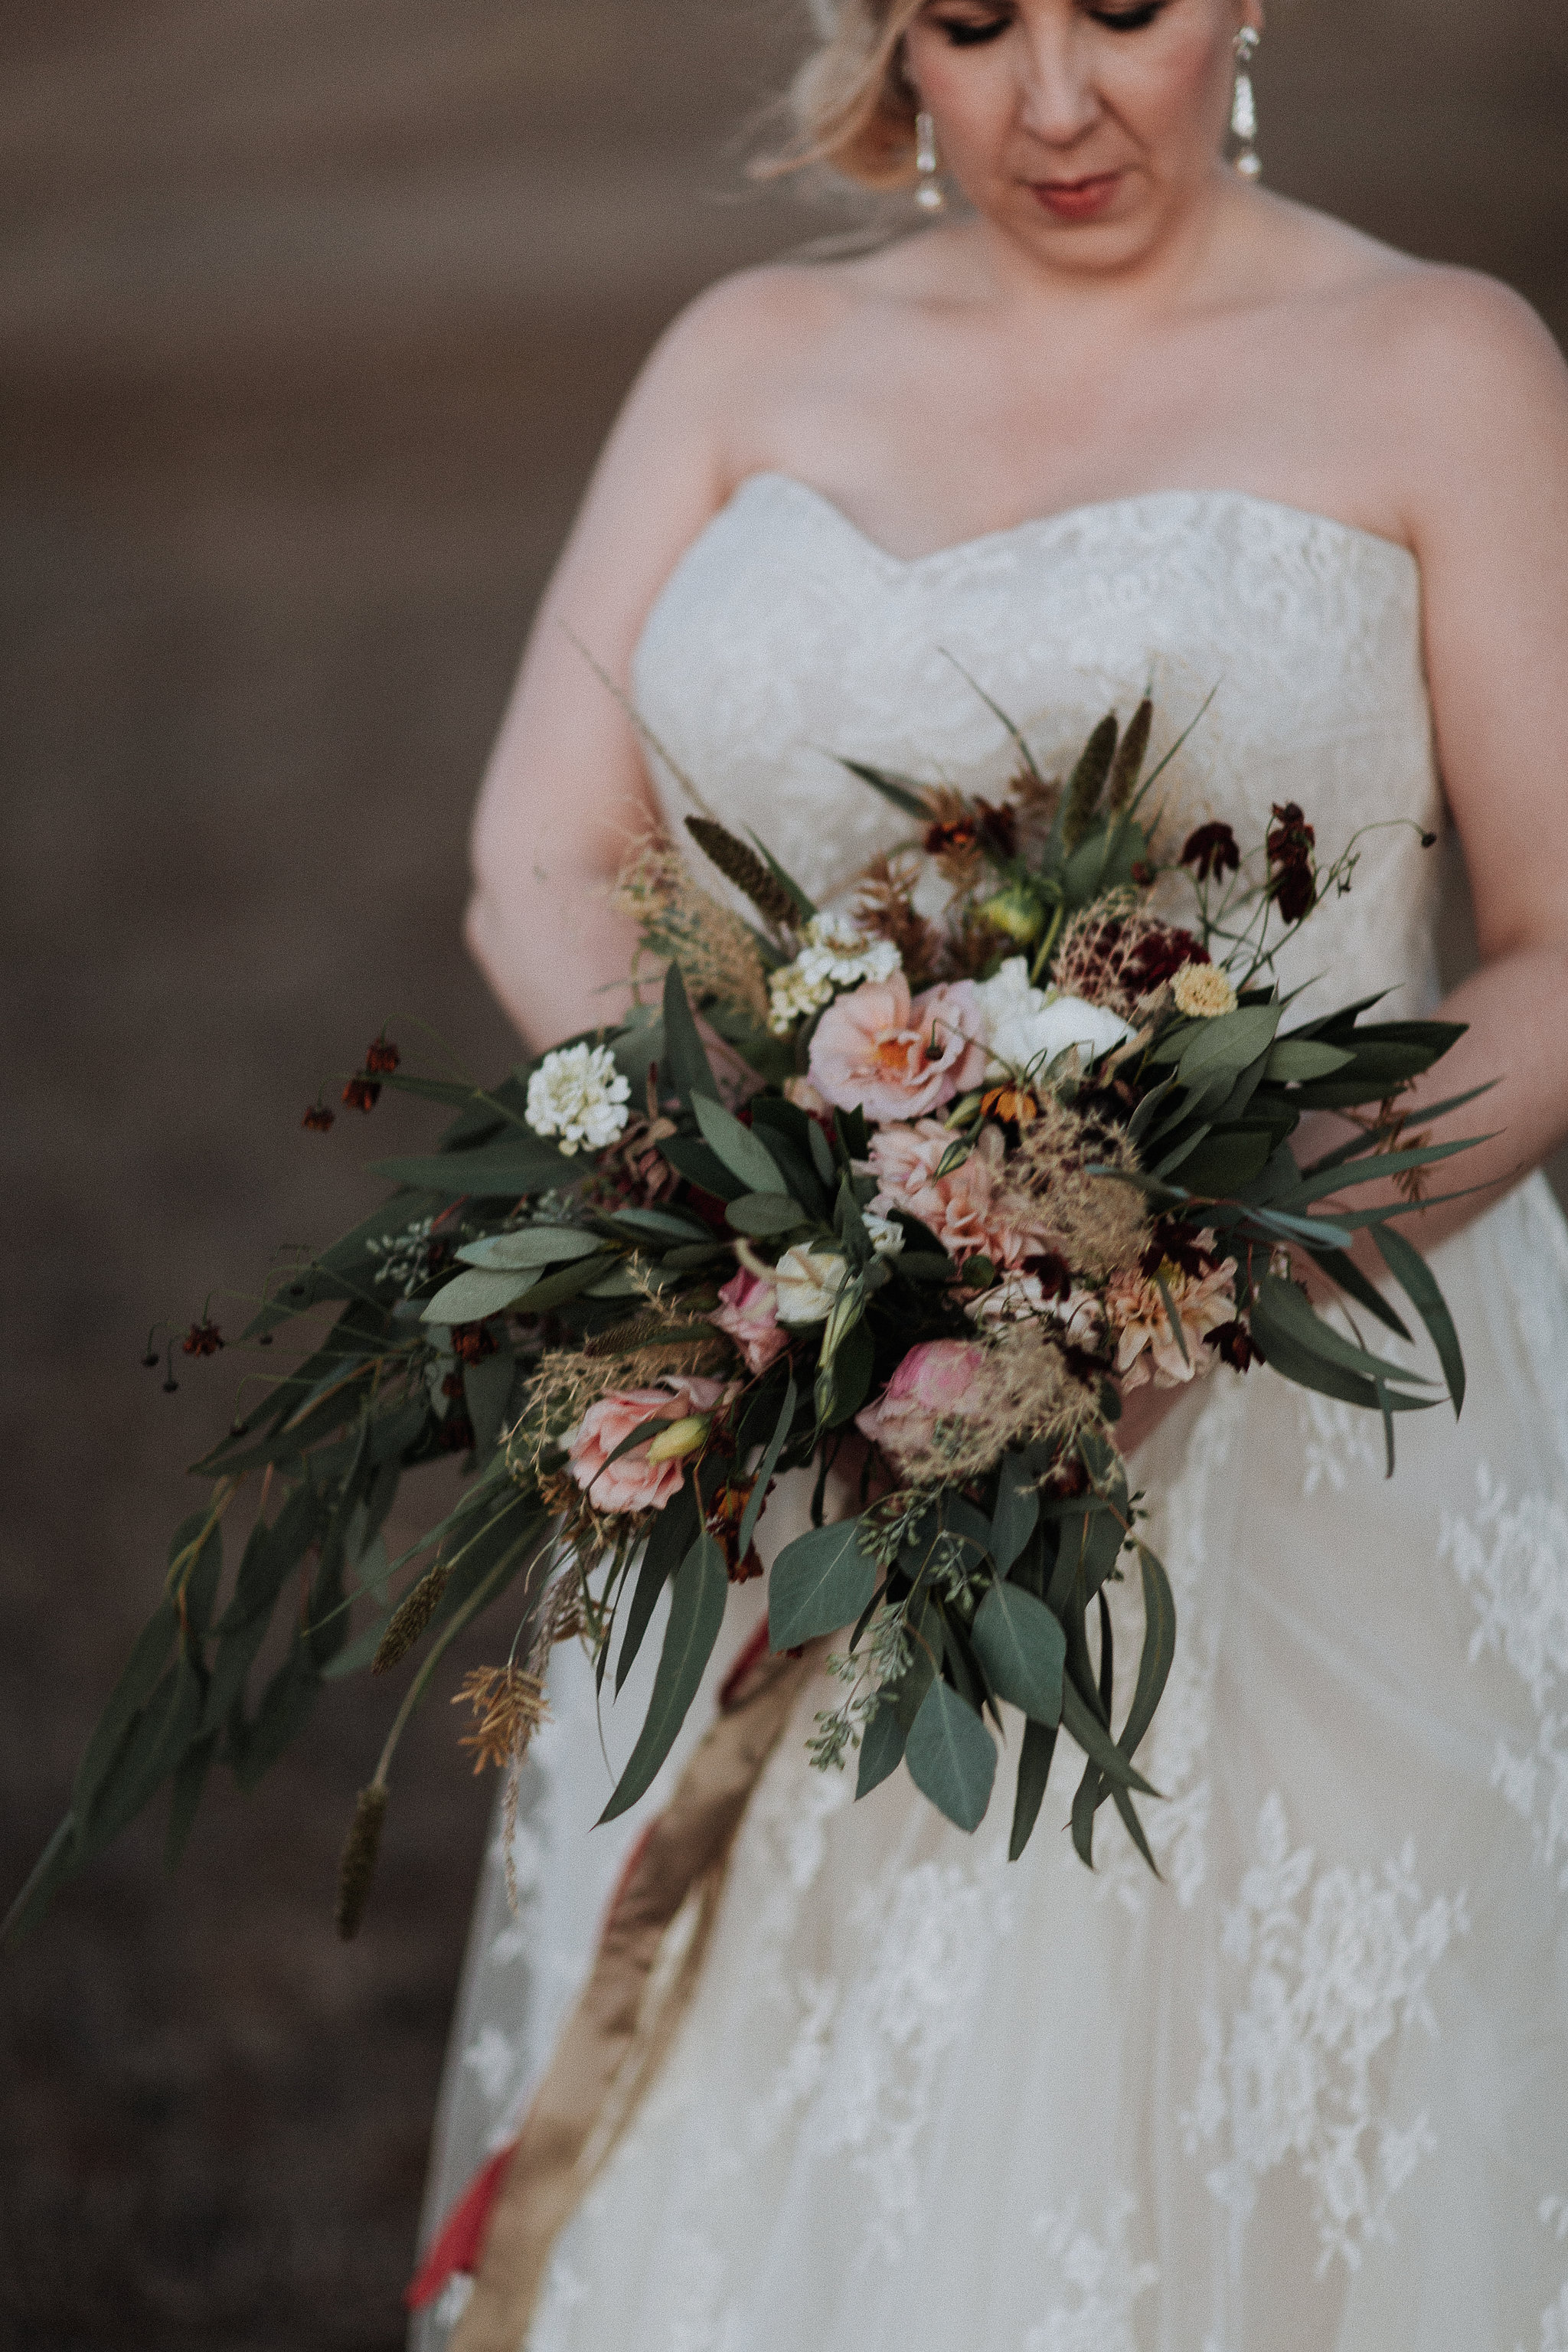 Wild an textural bridal bouquet with local flowers in shades of rose, gold, sage, and burgundy by Venn Floral at Olympia's Valley Estate with Ooh La La Weddings photographed by Gretchen Gause.